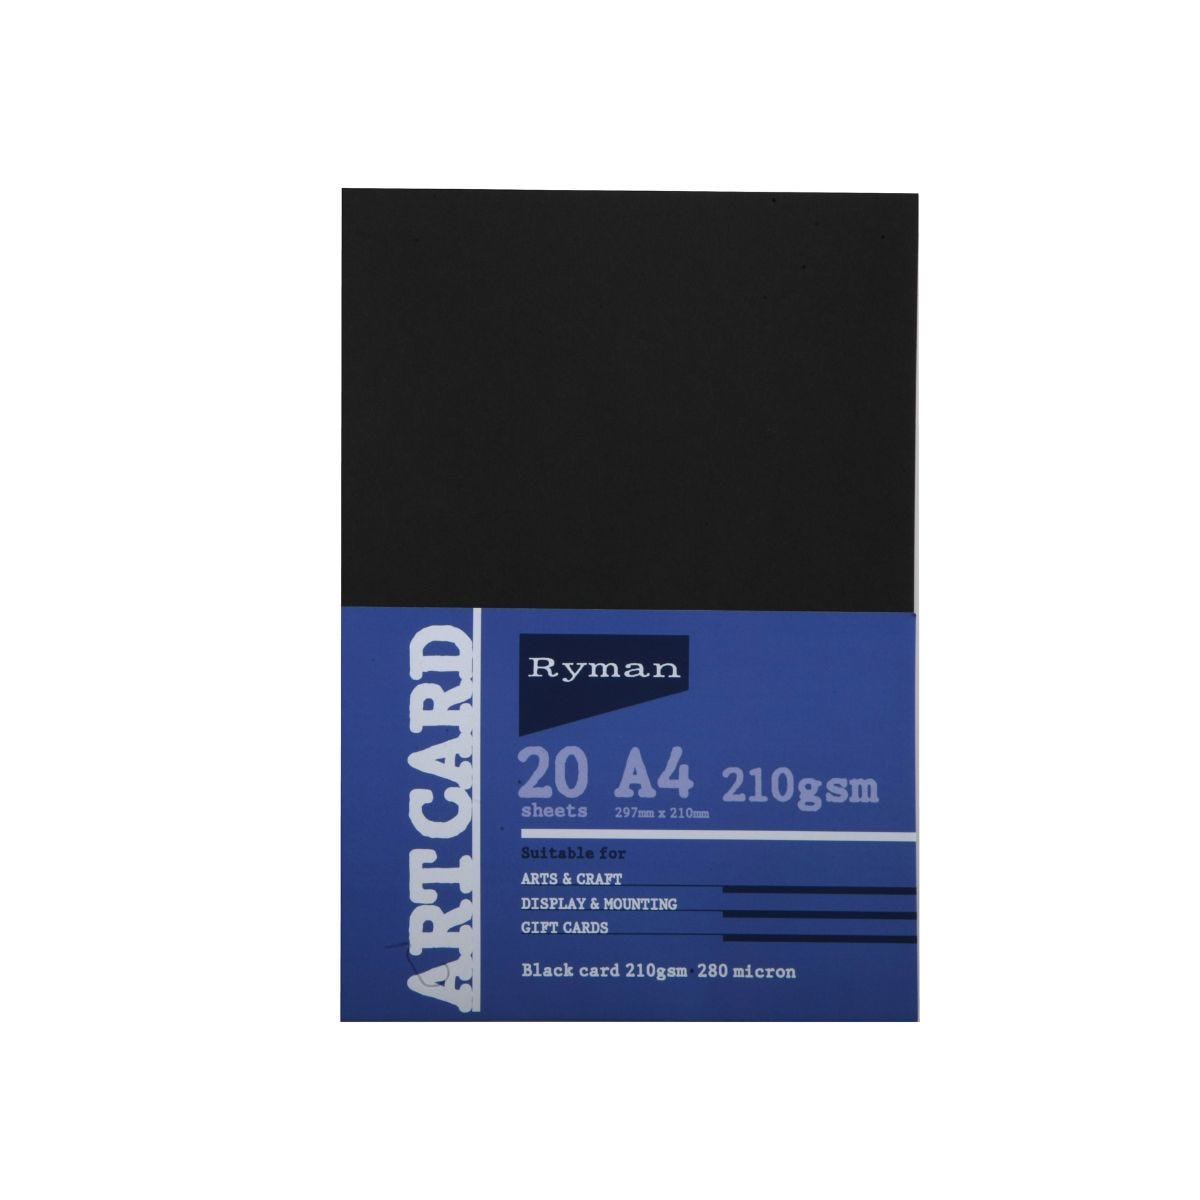 Ryman Art Card A4 210gsm 20 Sheets, Black